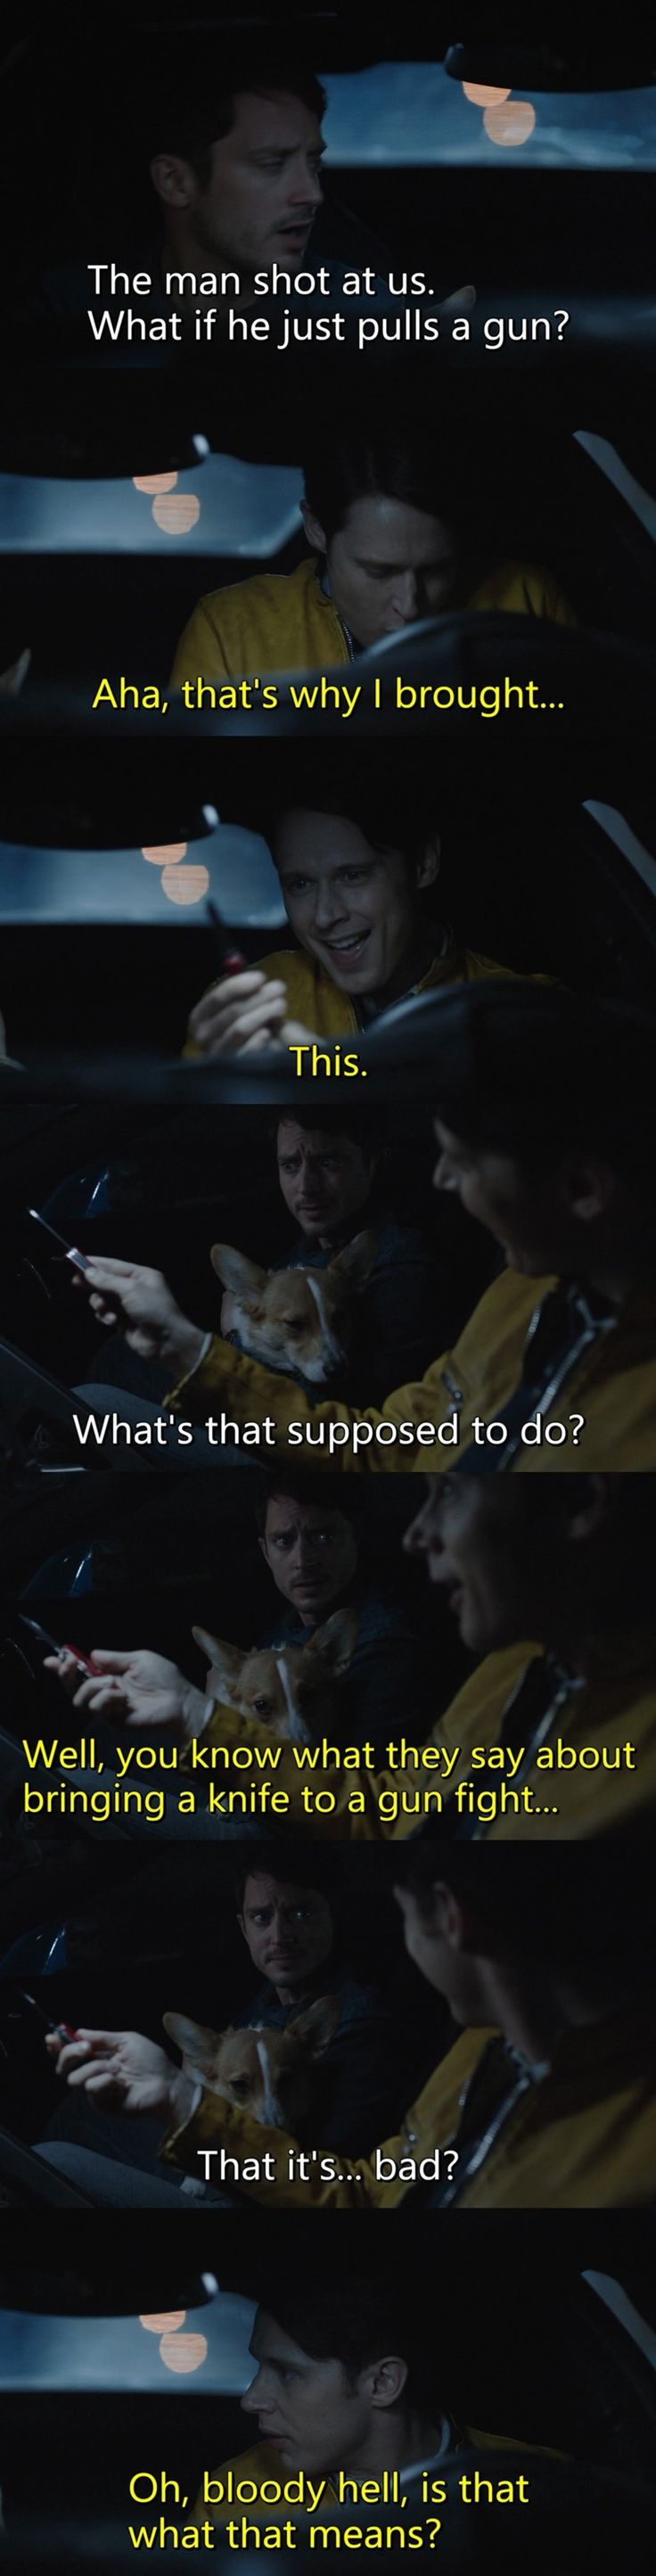 TVShow Time - Dirk Gently's Holistic Detective Agency S01E02 - Lost and Found